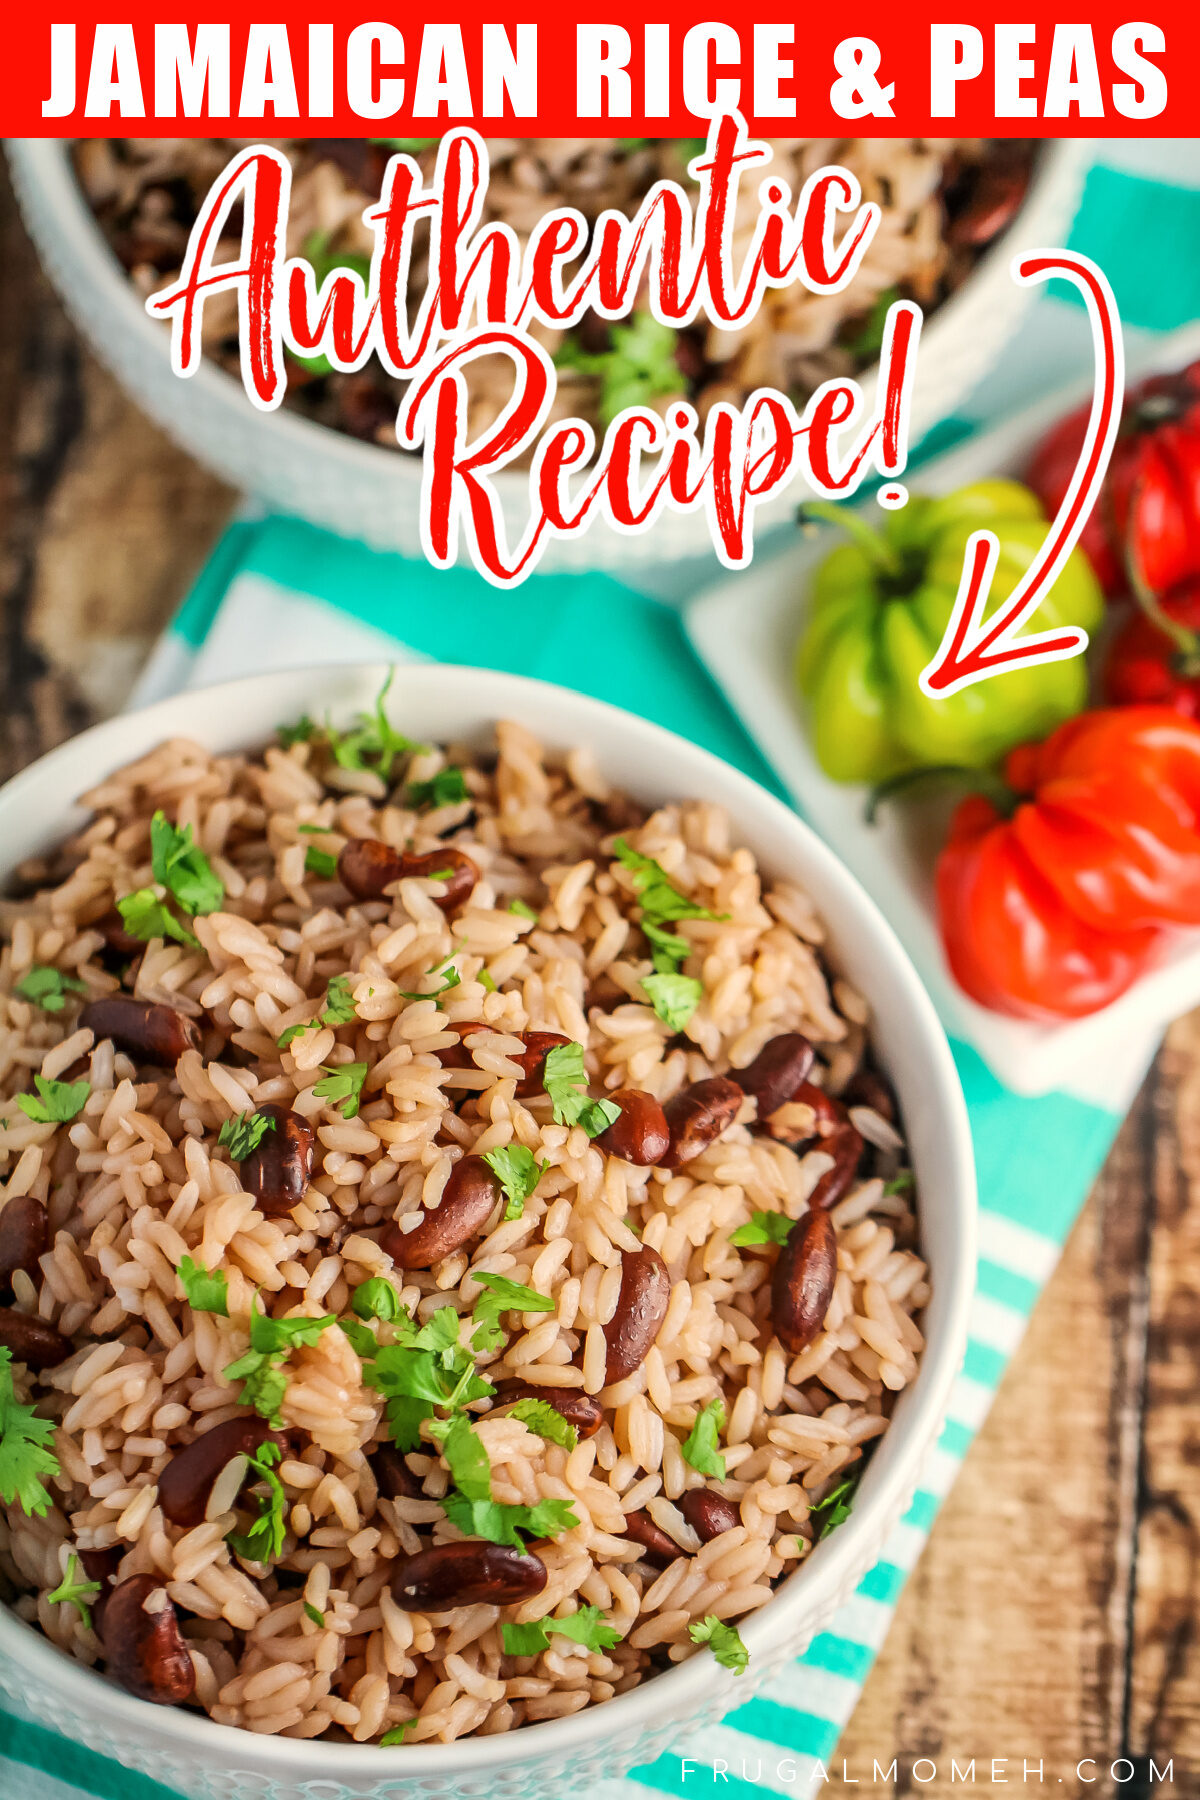 This Jamaican Rice and Peas recipe is an authentic recipe for the traditional Jamaican side dish featuring fragrant thyme and coconut milk!